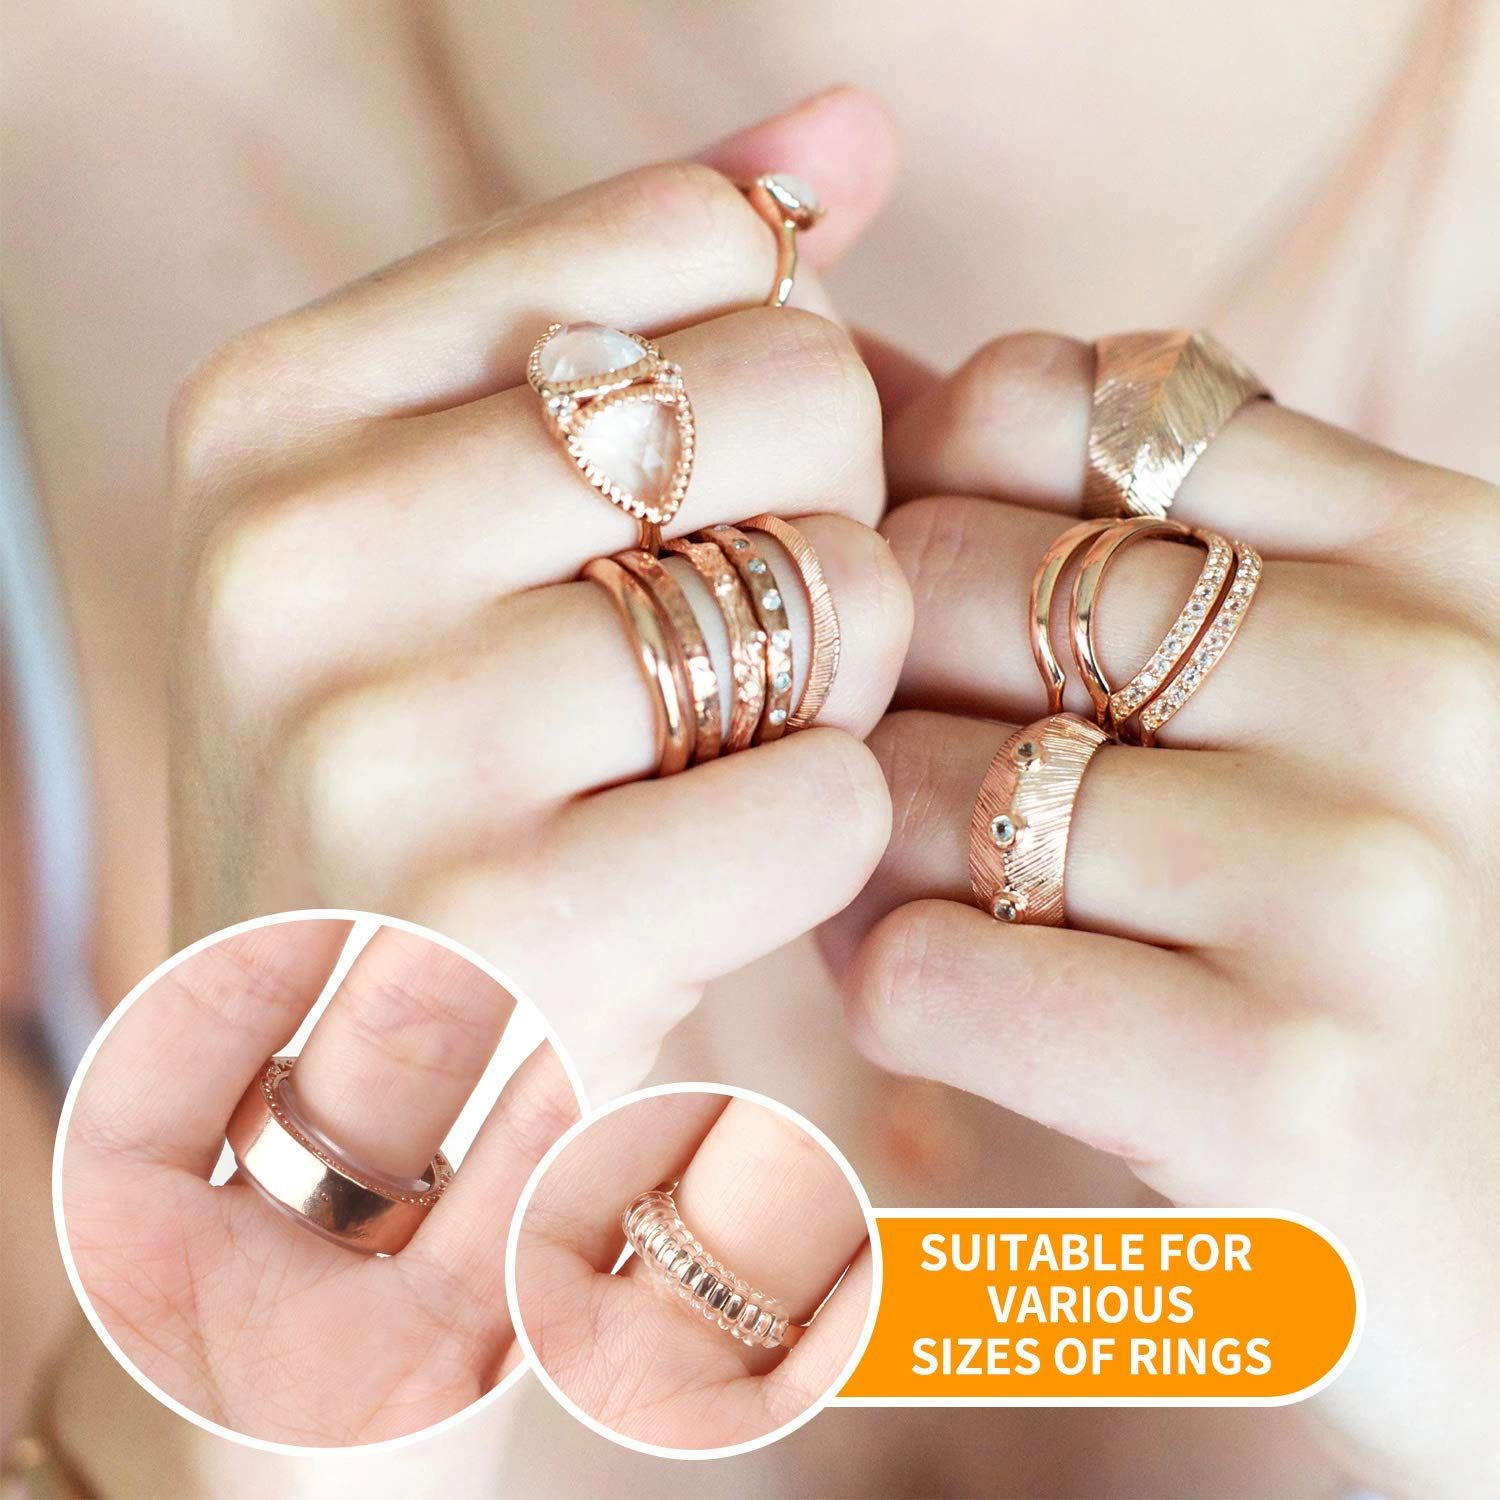 20 Pack Invisible Ring Size Adjuster for Loose Rings a